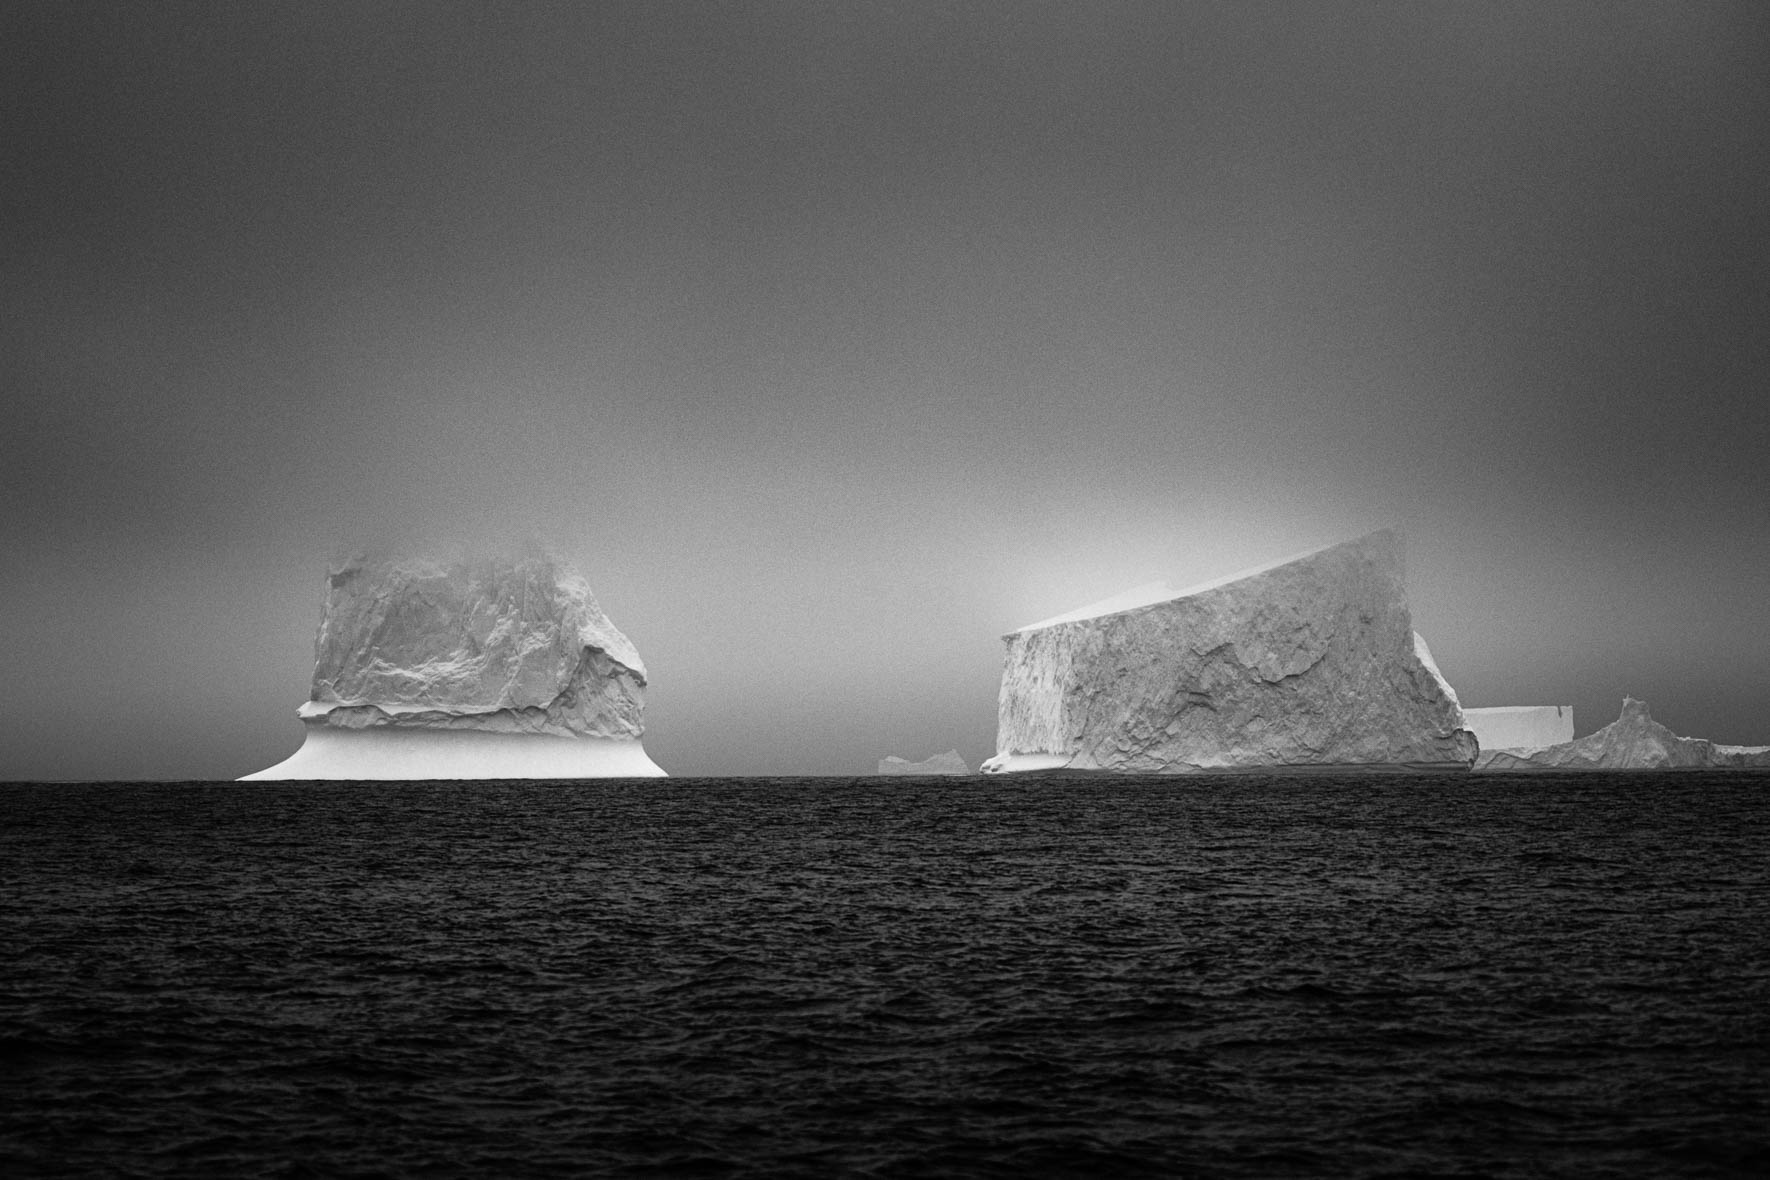 Tabular icebergs in the Gerlache Strait of Antarctica in black and white